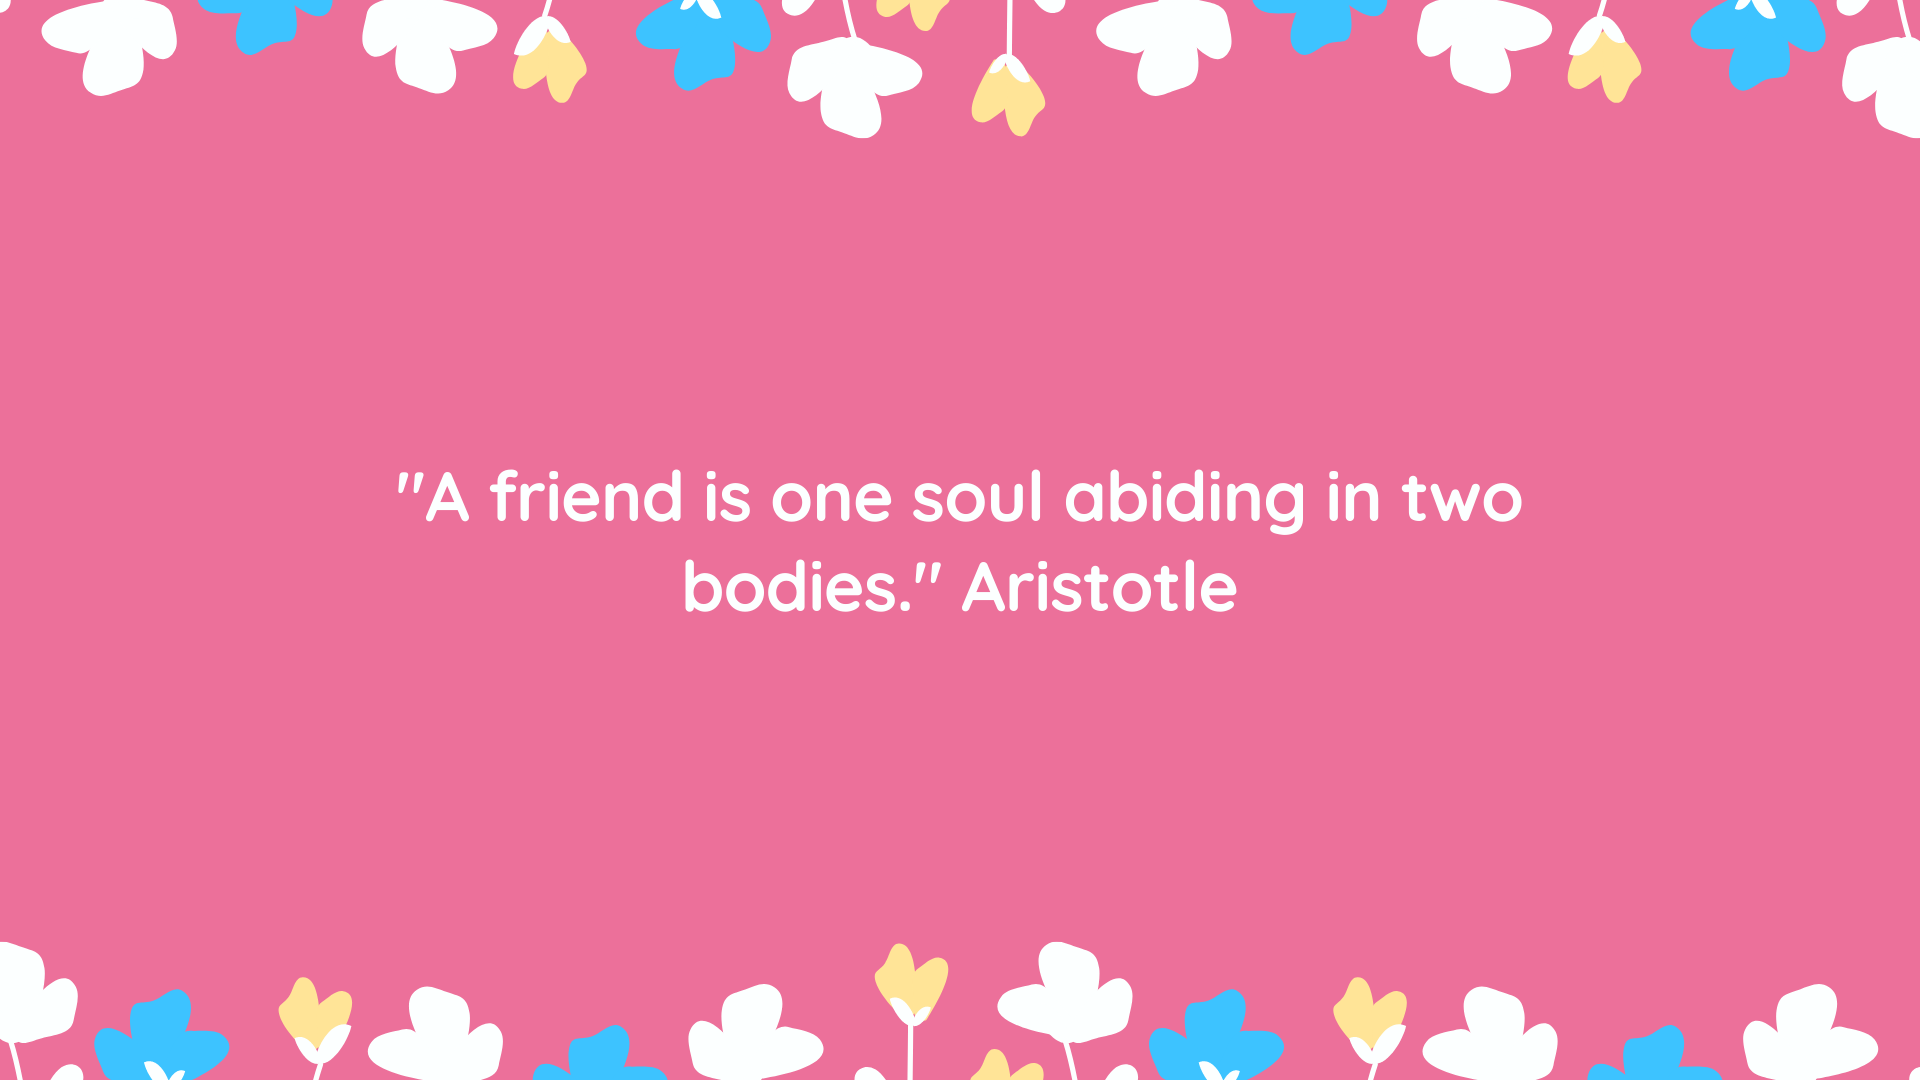 """A friend is one soul abiding in two bodies."" Aristotle"